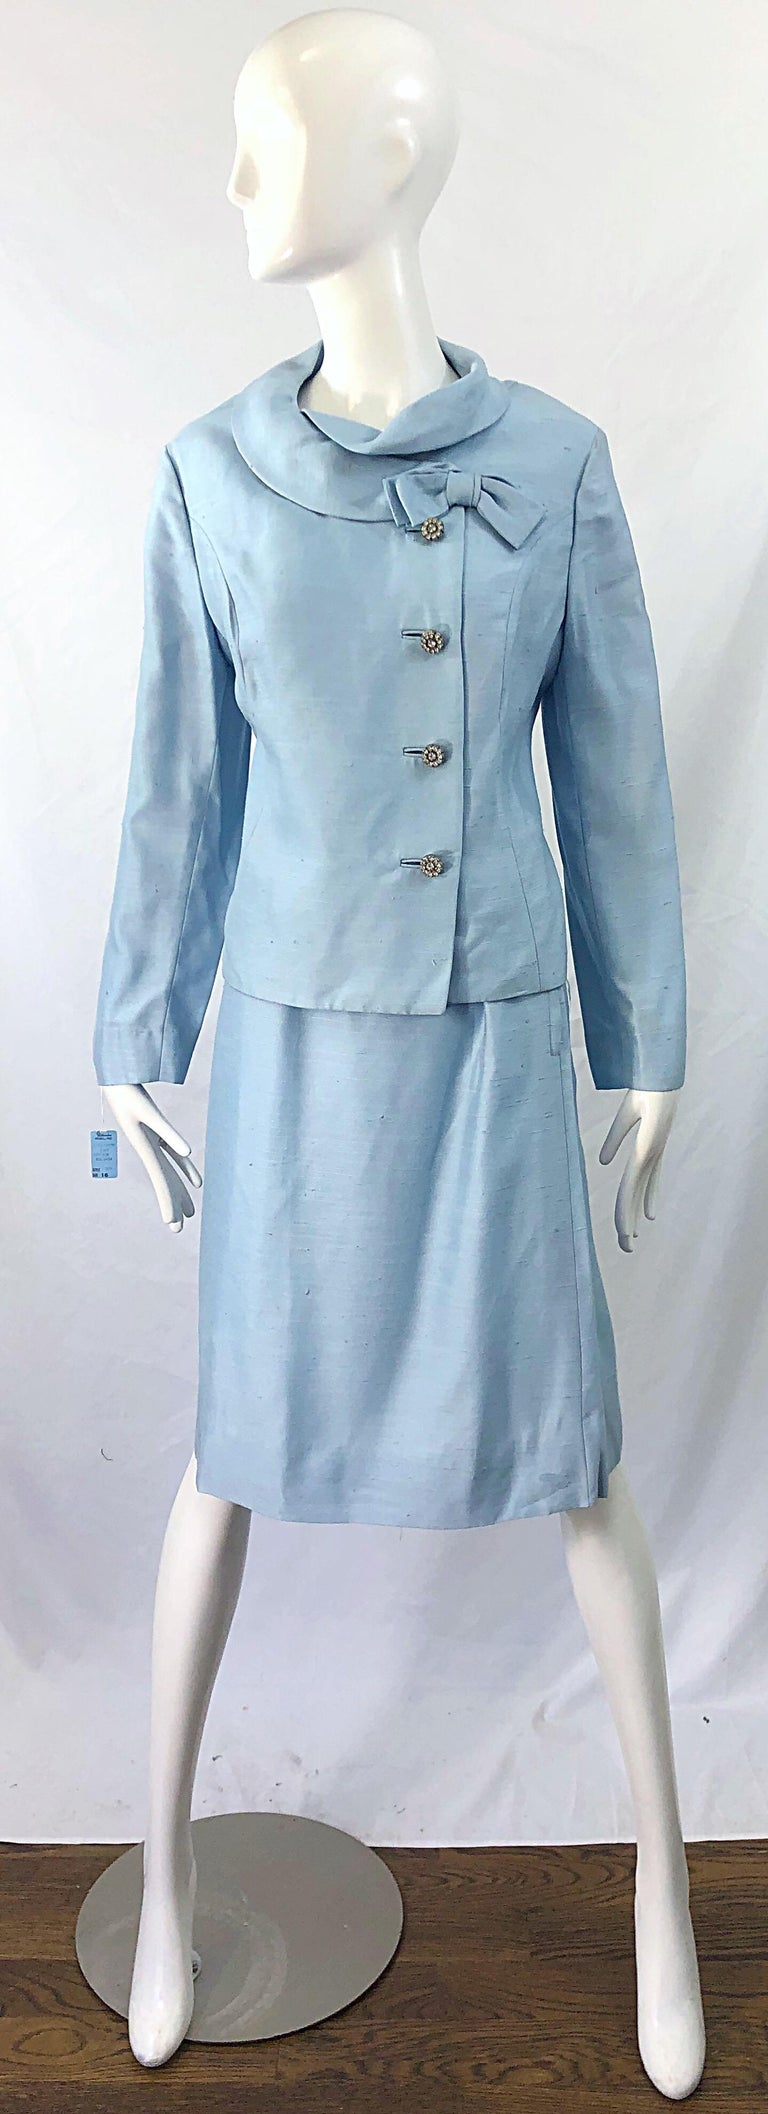 Chic deadstock ( brand new with tags ) original 1960s Alvin Handmacher ( Weathervane Tailored by Handmacher ) baby blue skirt suit ! Features a tailored jacket with pre--tied bow at left collar. Rhinestone encrusted buttons up the front. High